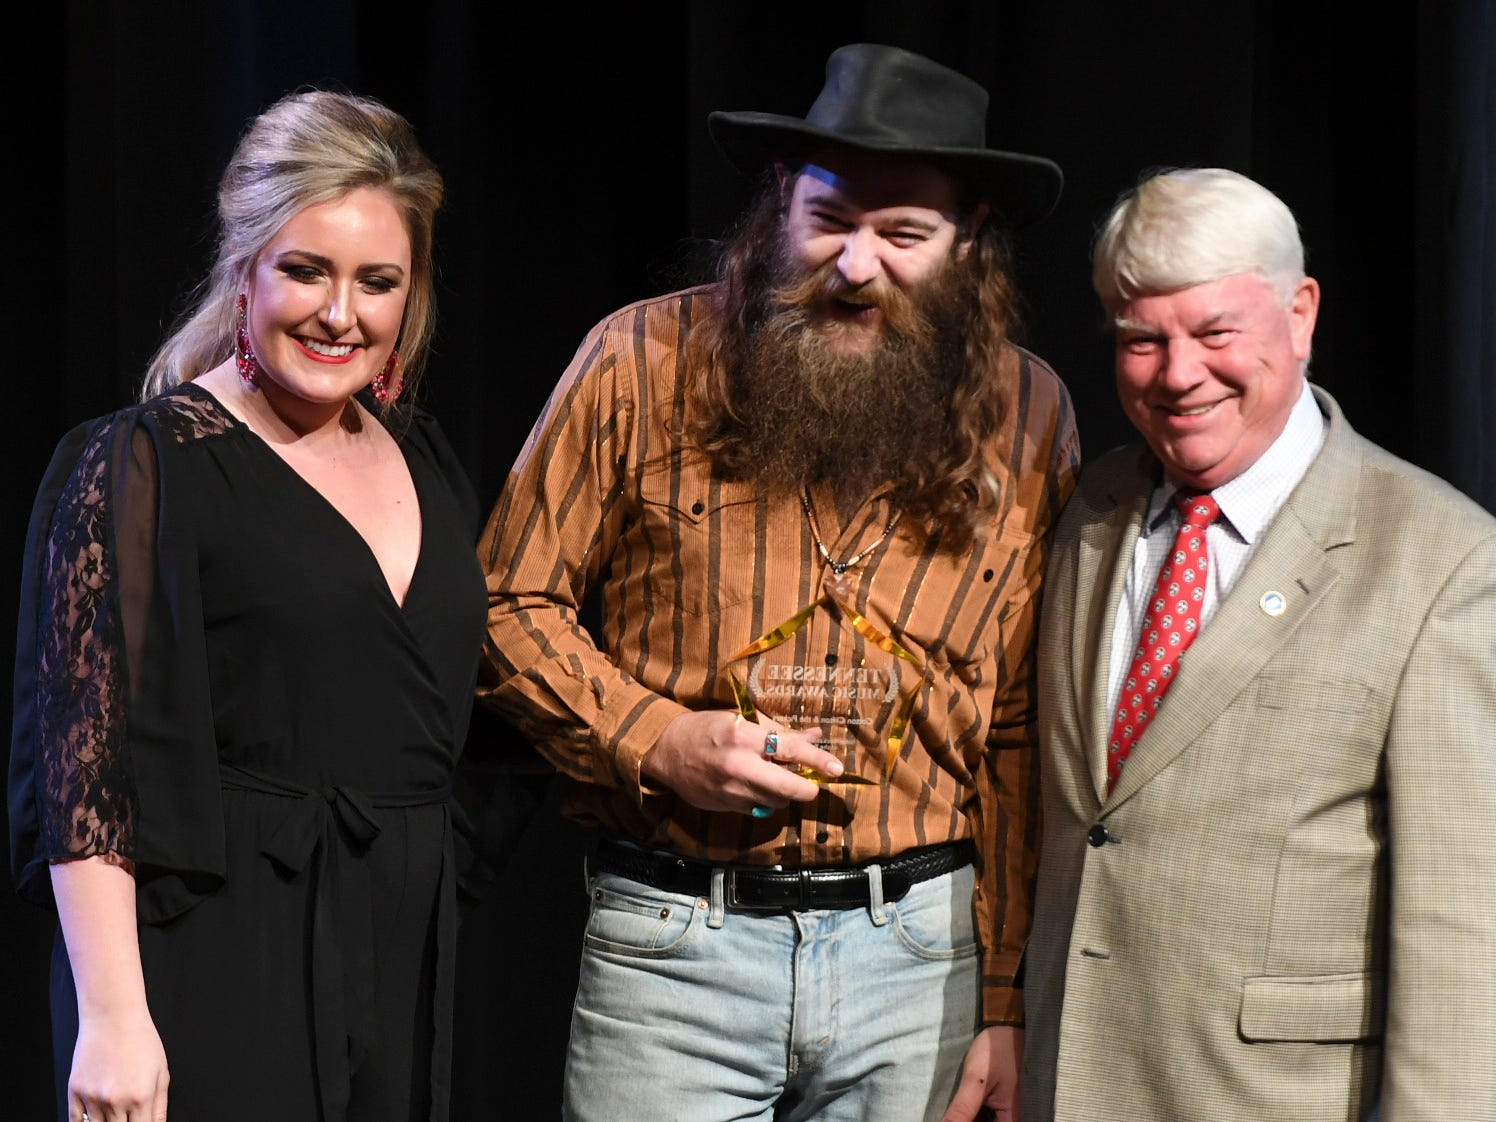 Cotton Clifton of Cotton Clifton and the Pickers received the award for Indie Band of the Year at the 2nd Annual Tennessee Music Awards, Monday, October 8, at University of Memphis Lambuth.